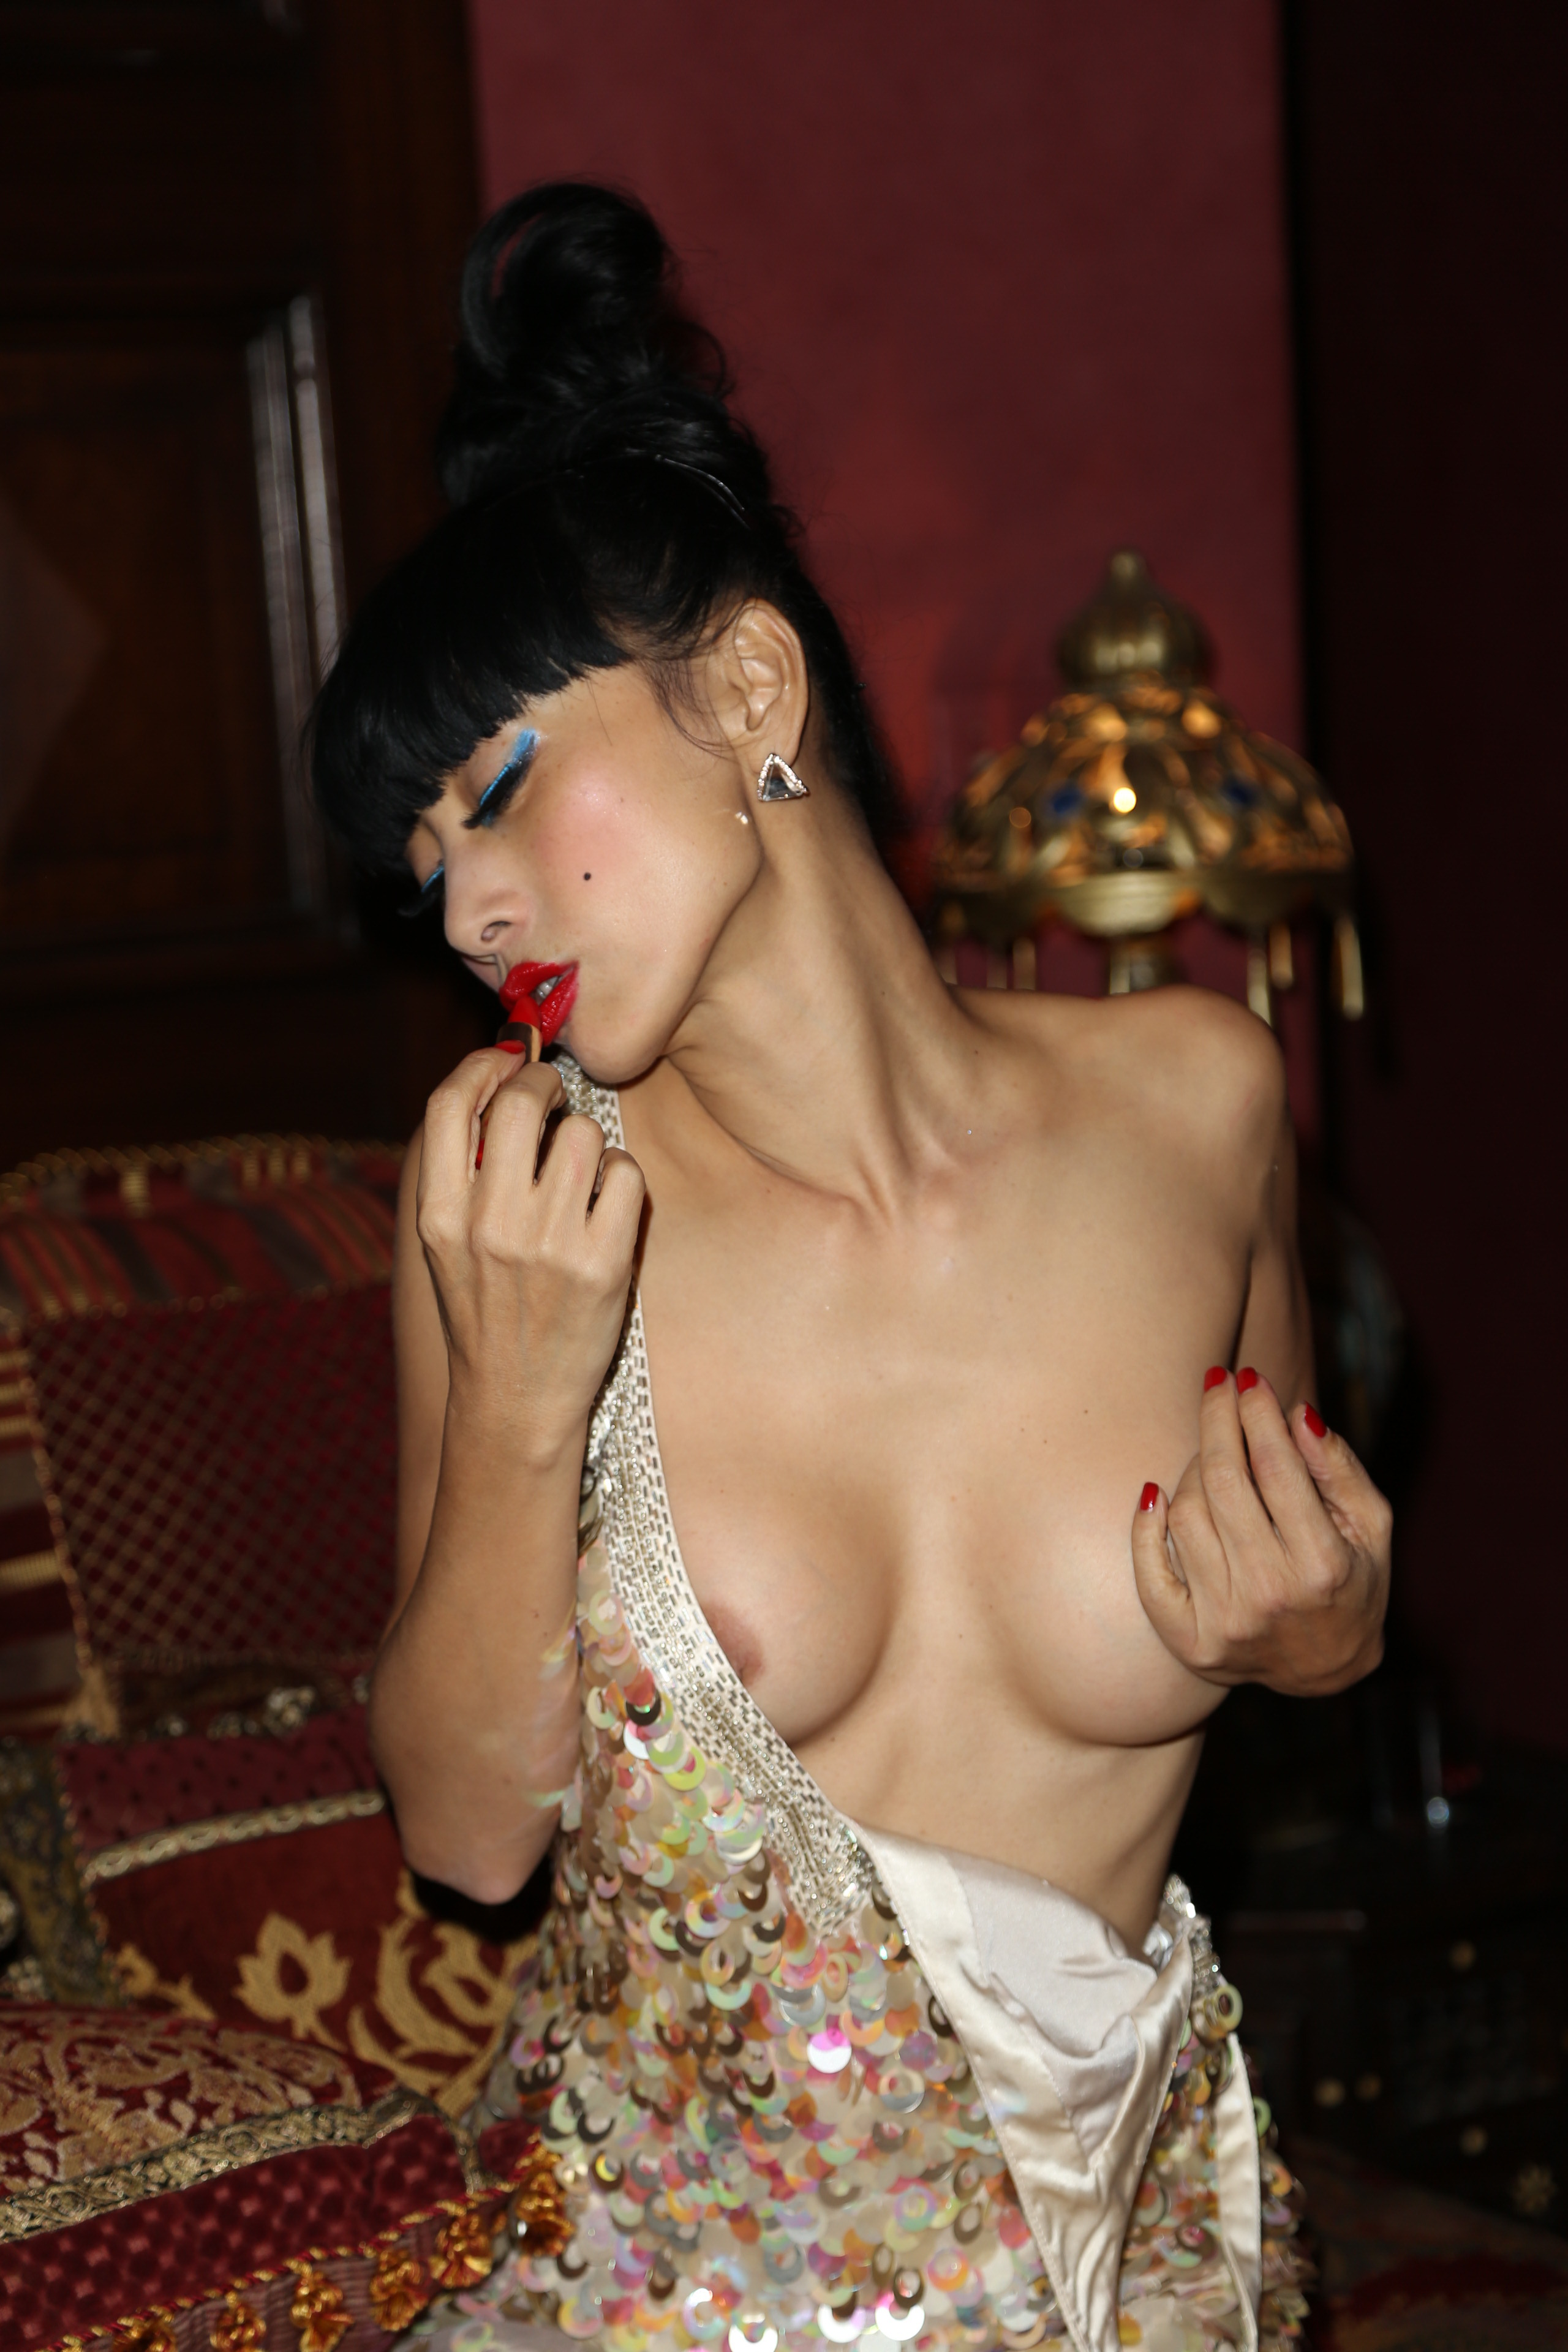 nude babes lost innocence